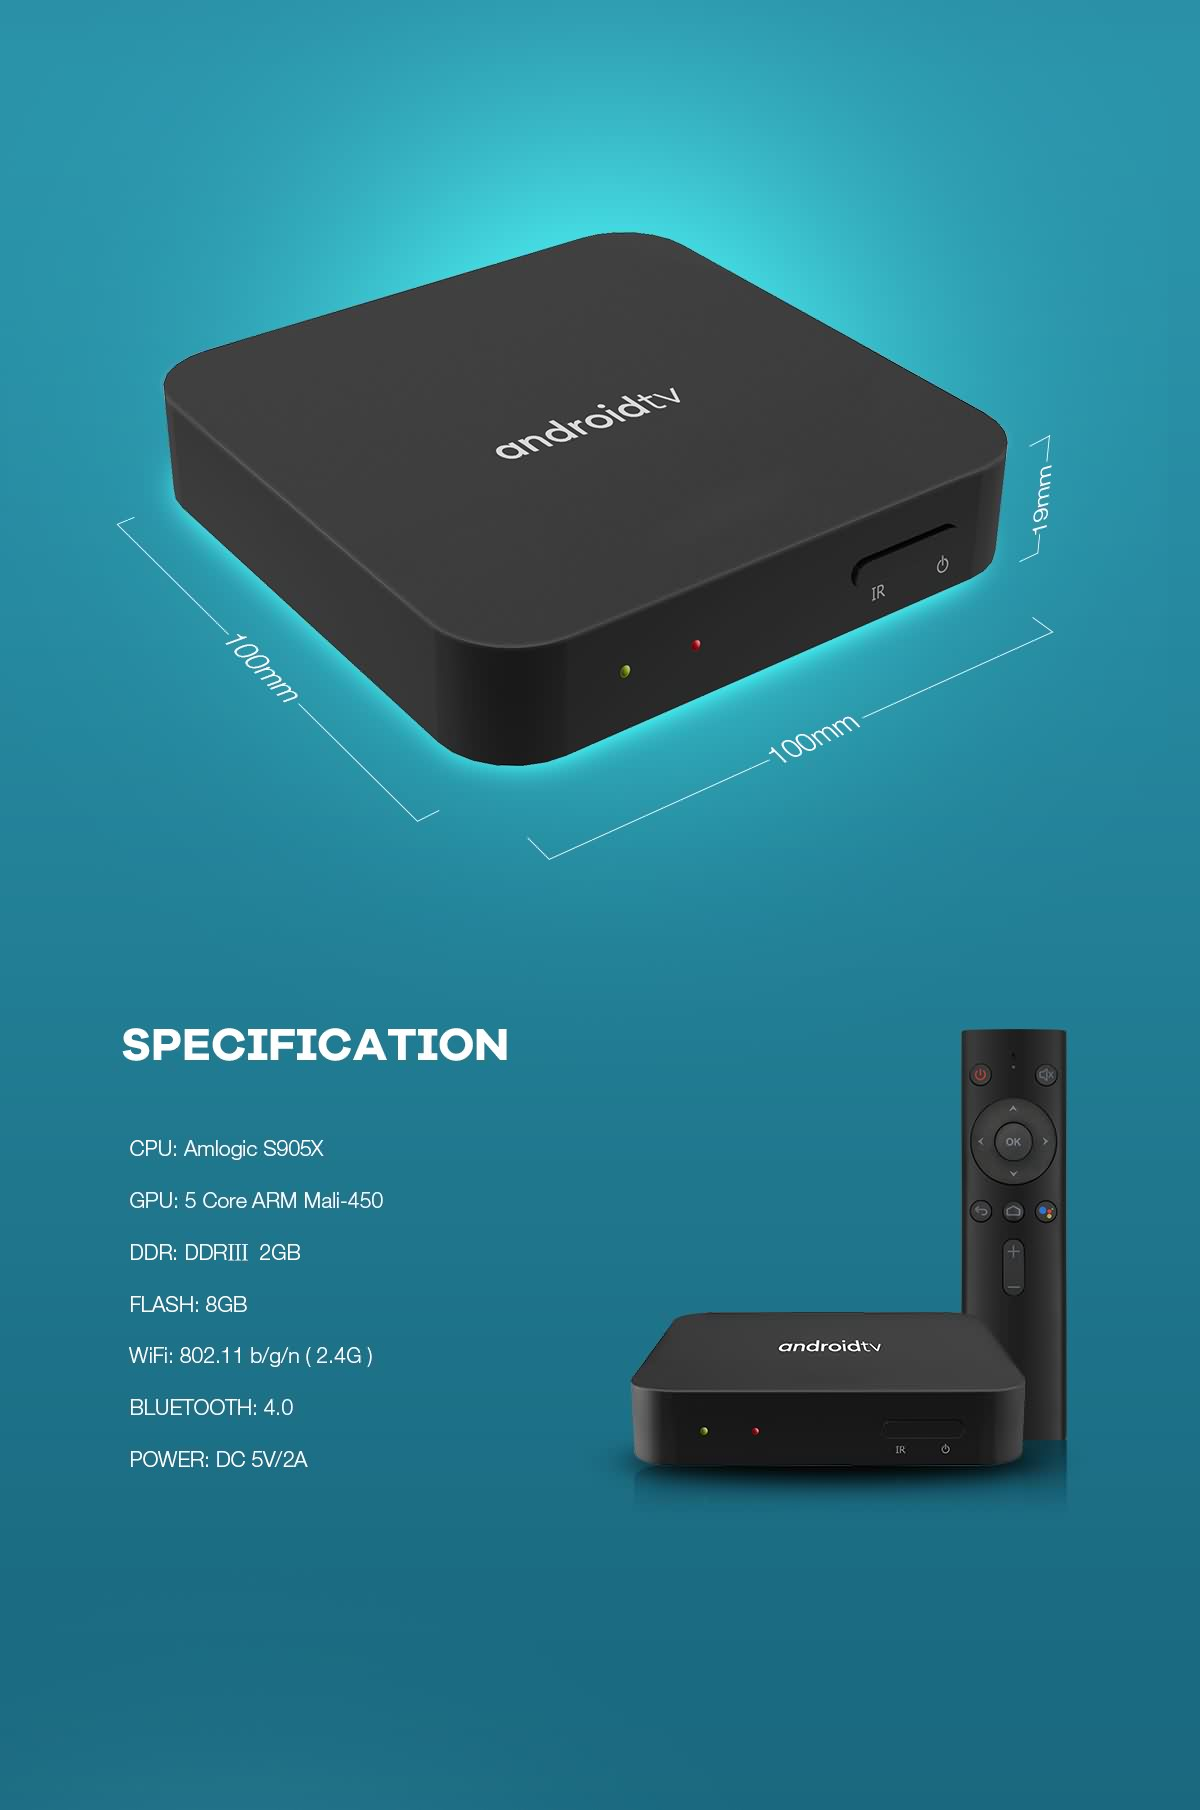 Pure OTT androidtv™ 9.0/10.0 OTT Box with Google certificate based on Amlogic S905X chipset 9